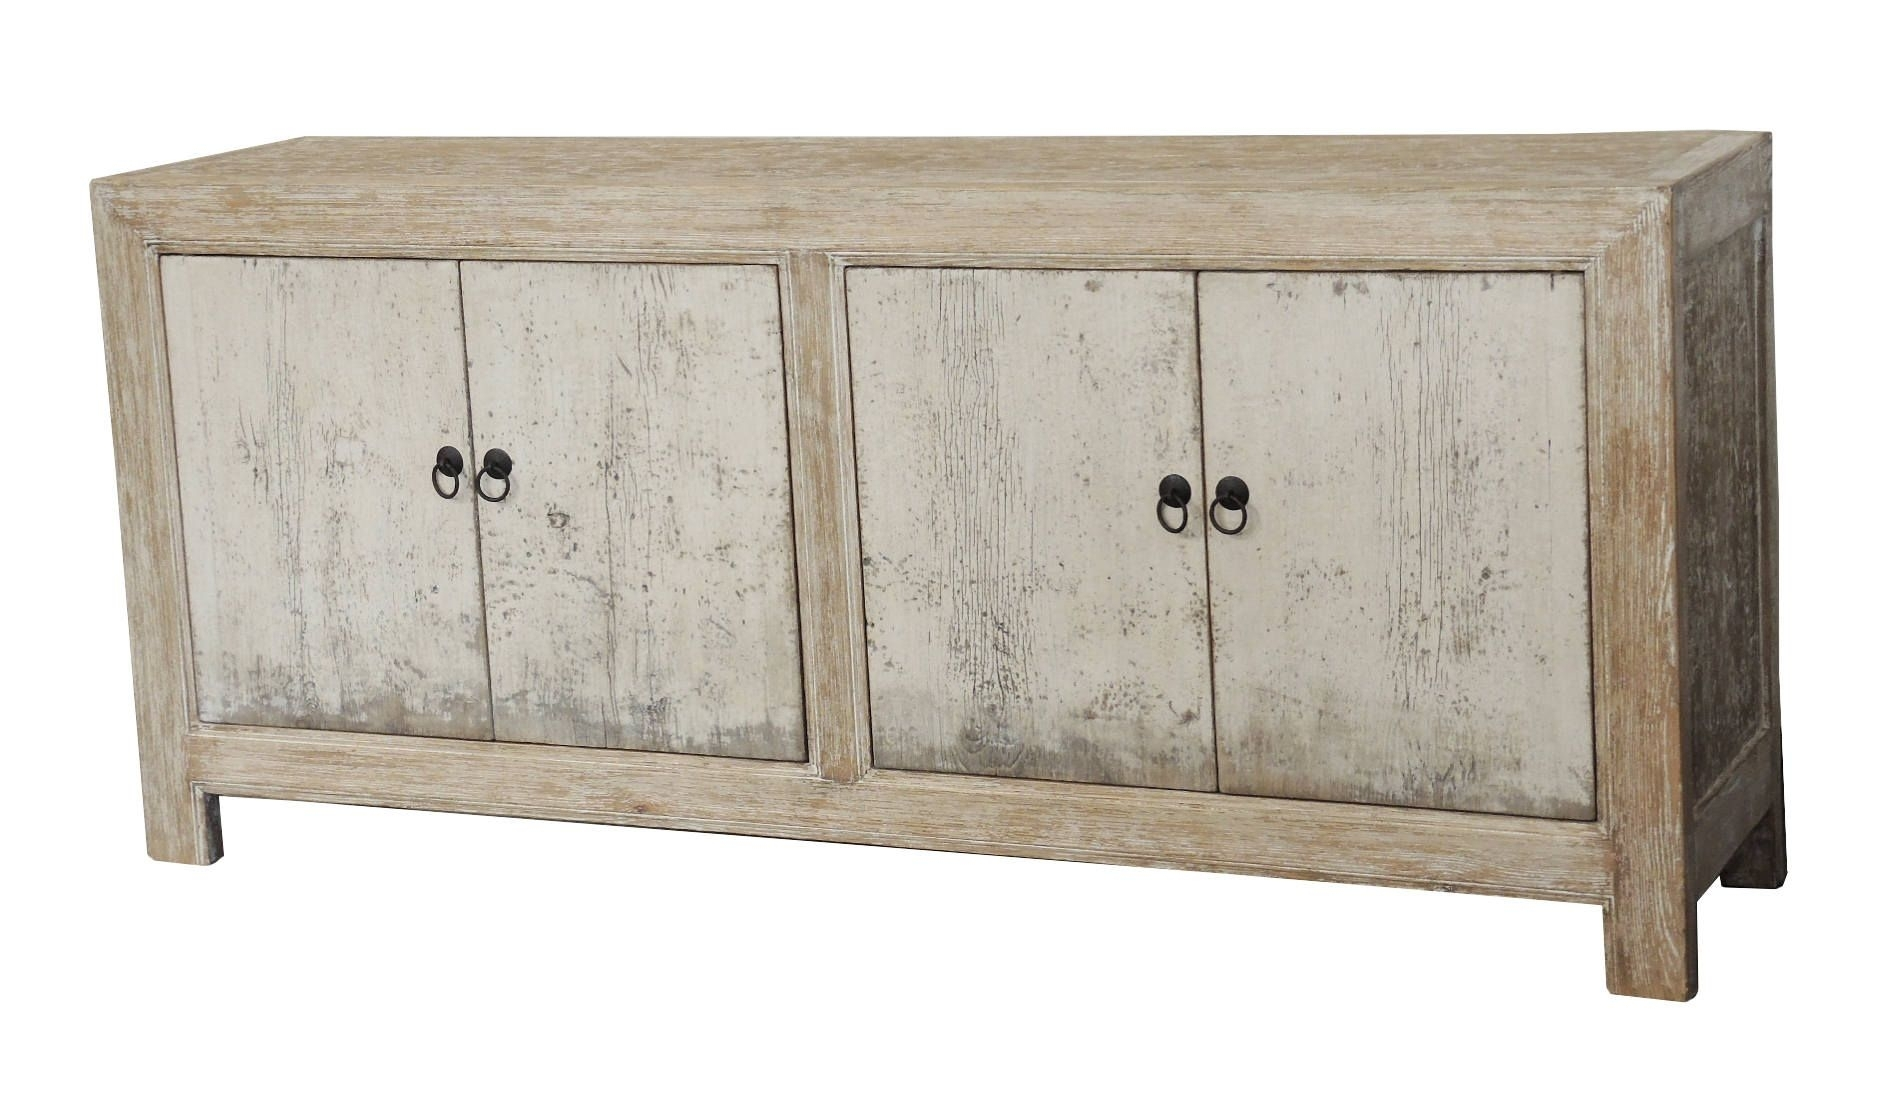 White Wash Distressed 4 Door Sideboard From Terra Nova Designs Inside Recent Vintage Finish 4 Door Sideboards (View 5 of 20)